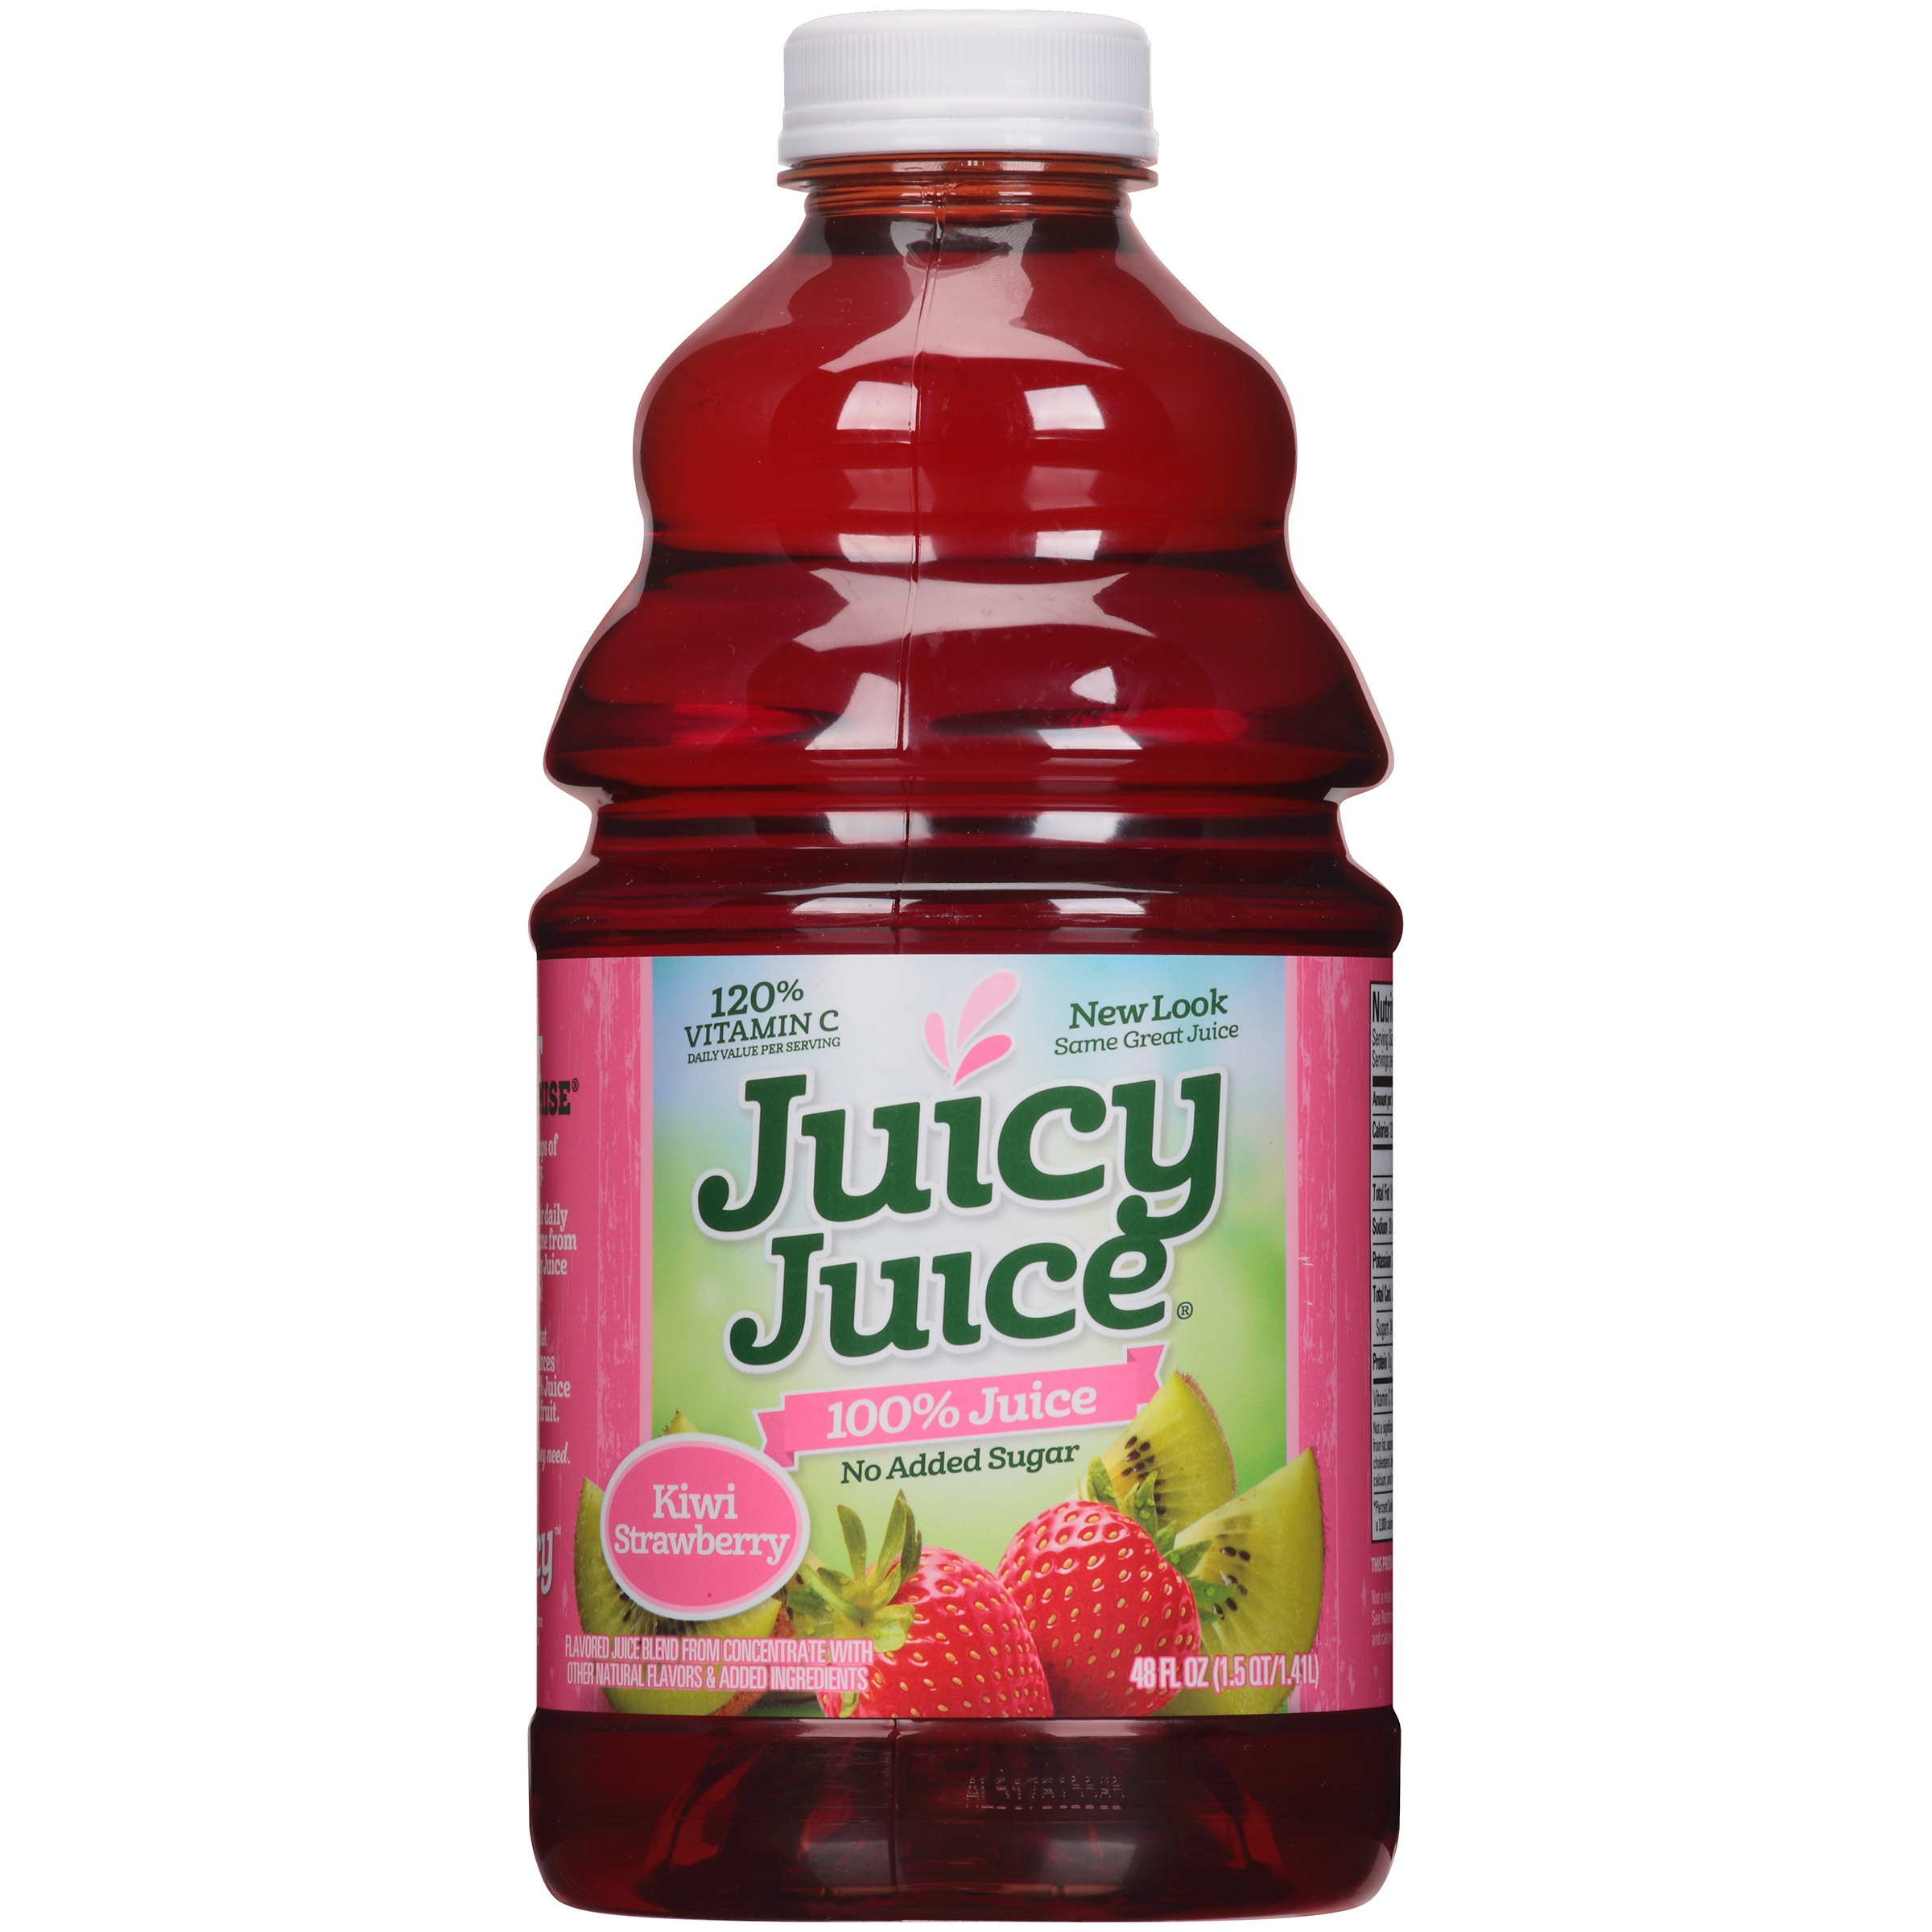 Juicy Juice 100% Juice, Kiwi Strawberry, 48 Fl Oz, 1 Count